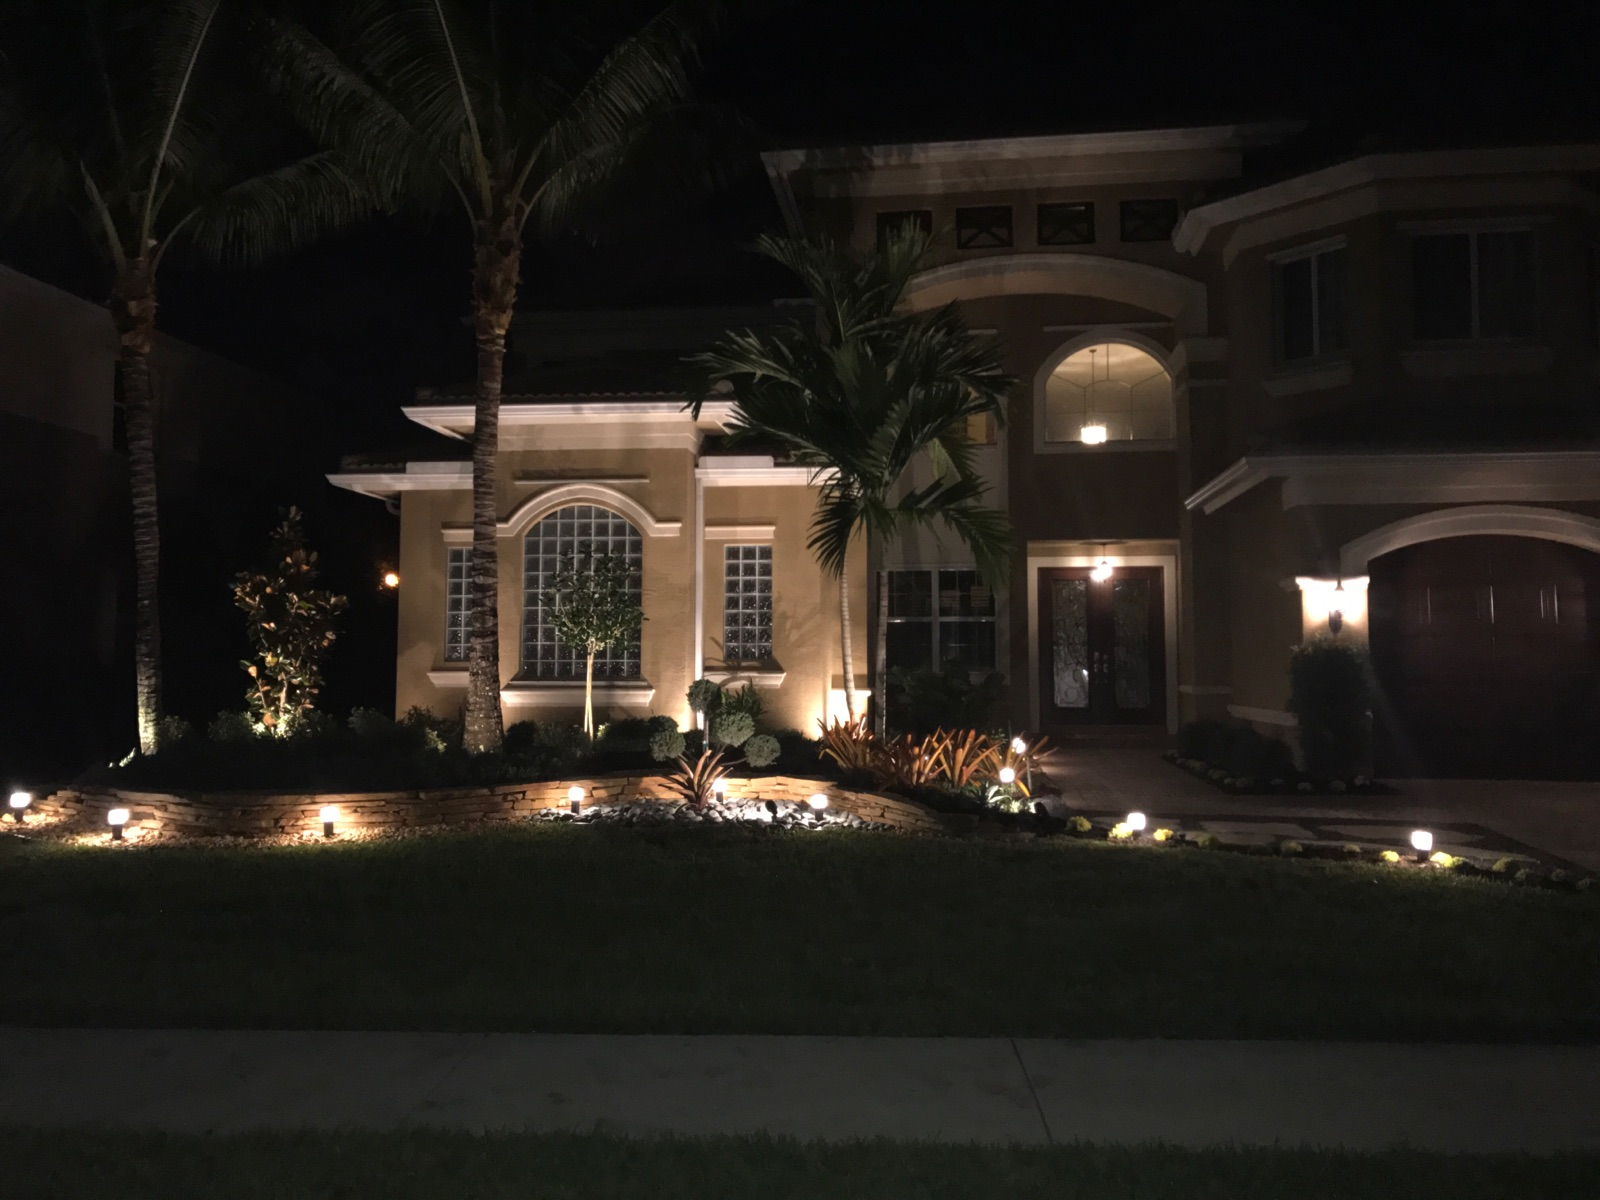 This front yard stone work with lighting shows how a yard can stand out even at night. The accents of the lighting highlight the stone wall u0026 the home to ... & front landscape stone work with lighting - Universal Landscape Inc. azcodes.com